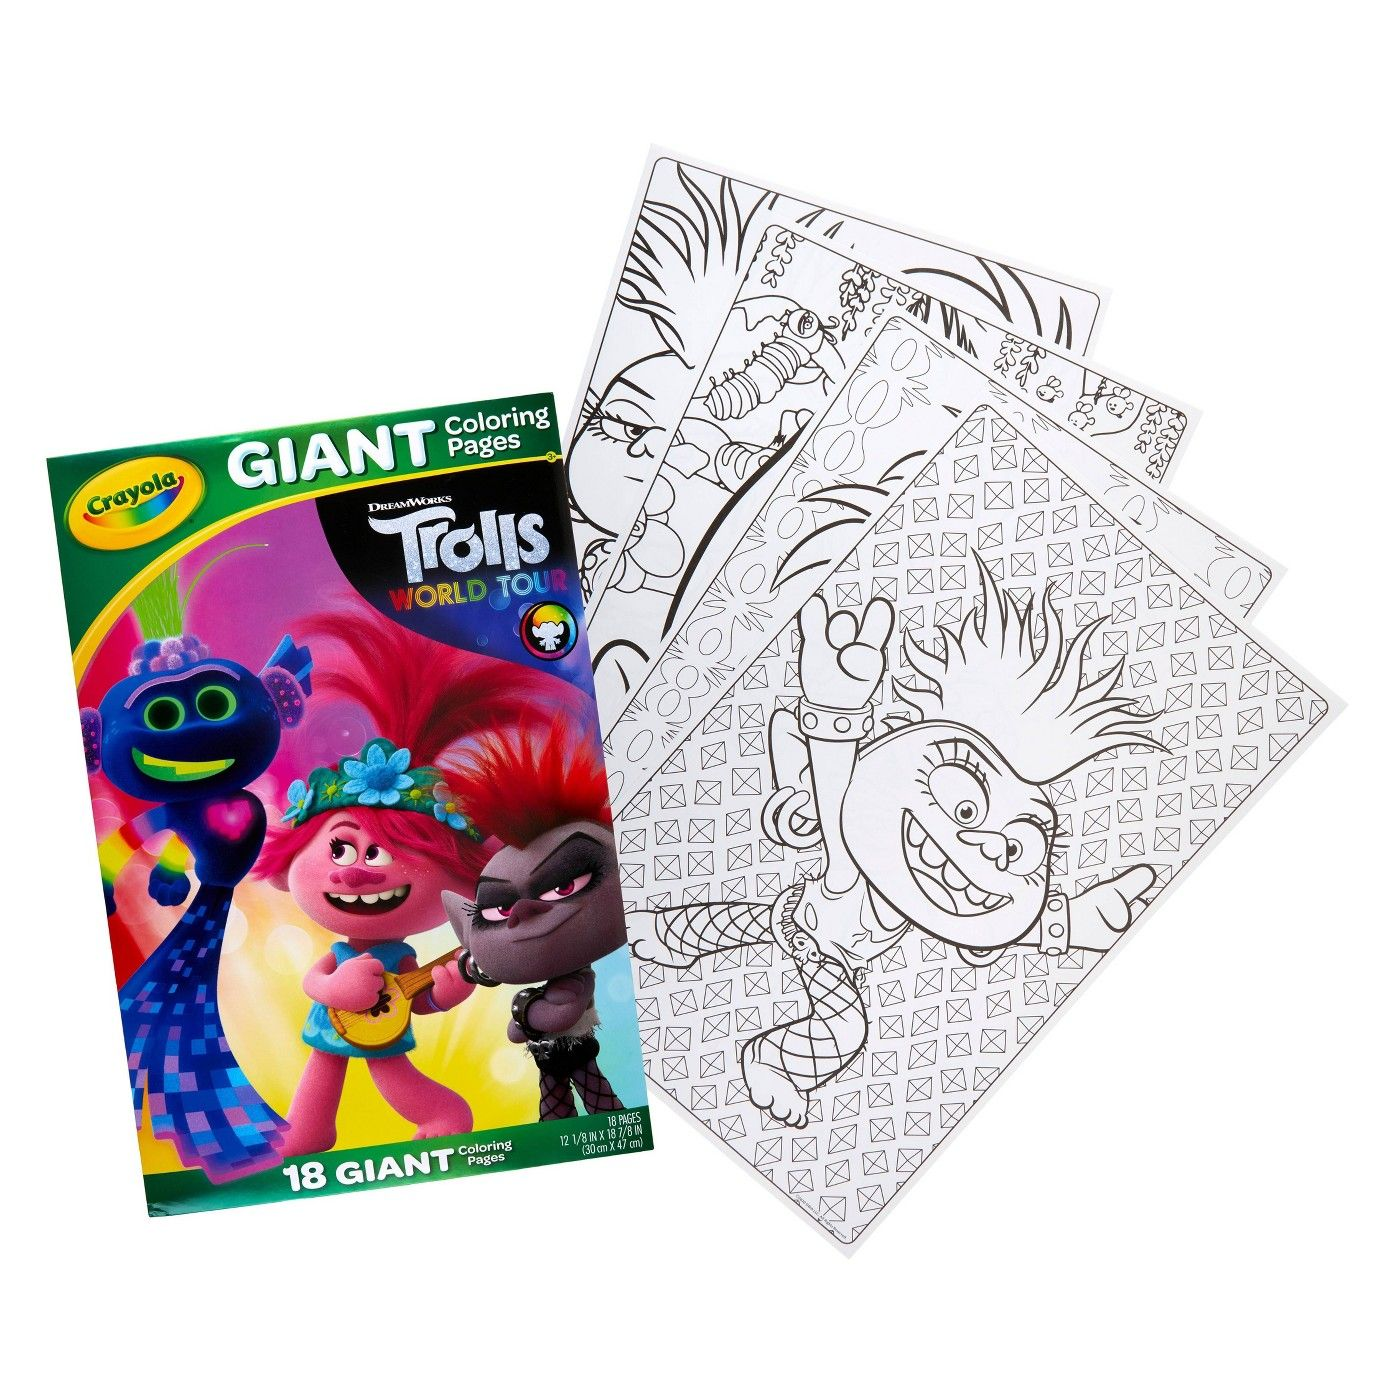 Crayola Giant Coloring Pages   Trolls 18   Coloring pages, Crayola ...